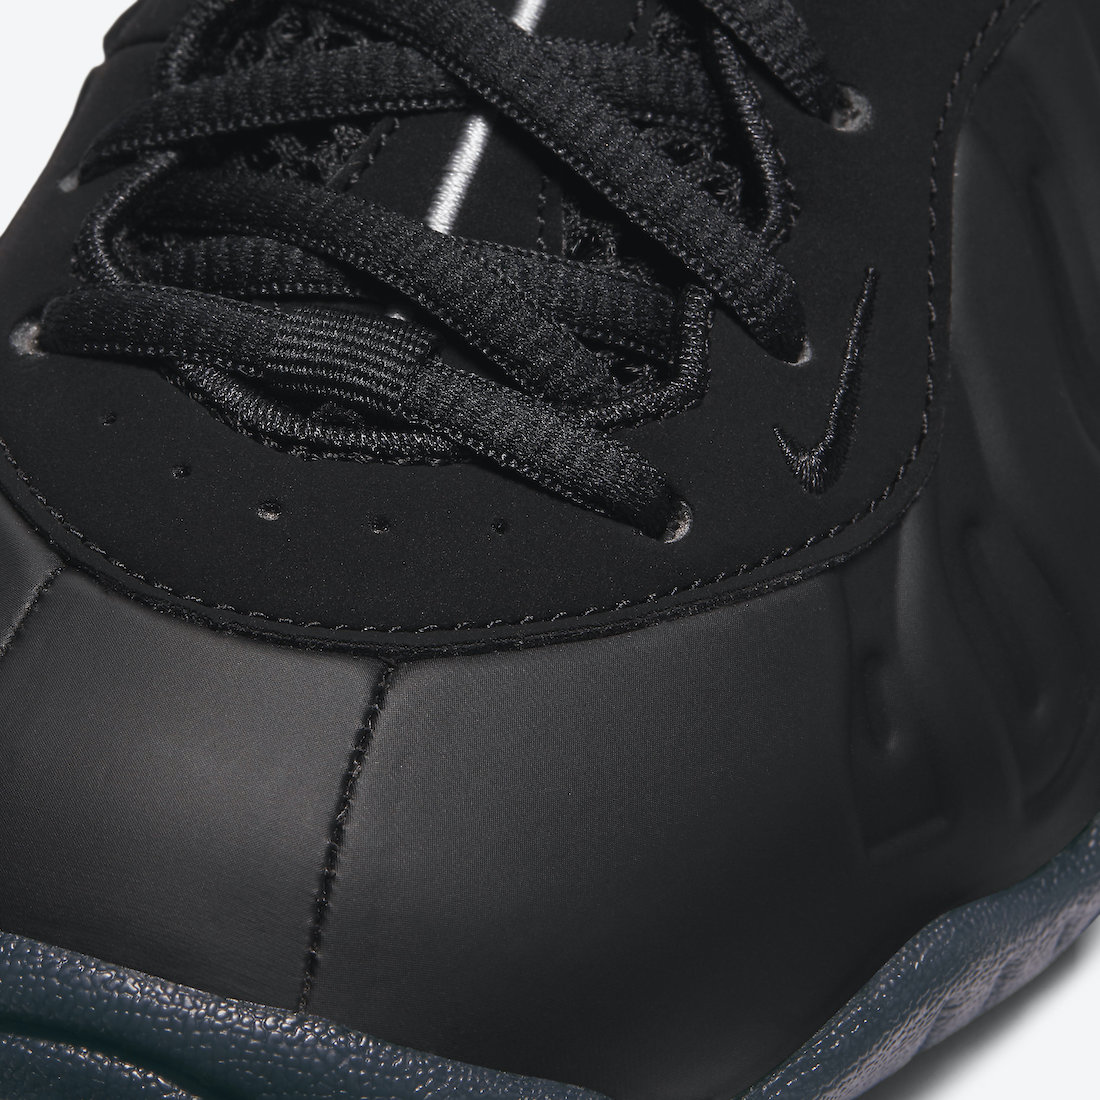 Nike Little Posite One Anthracite 644791-014 Release Date